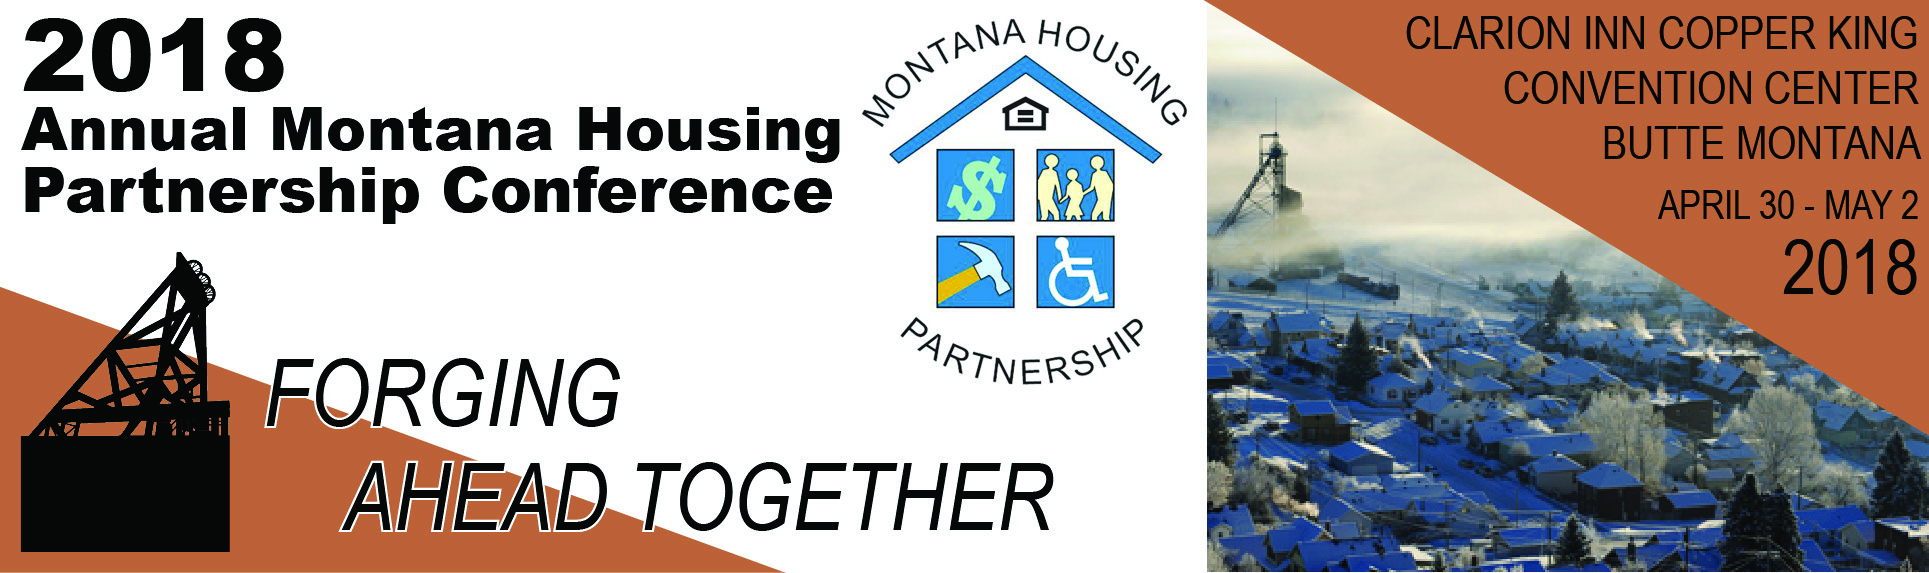 The 2018 Housing Conference Banner shows the Logo which is a Headframe, and the conference theme, FO